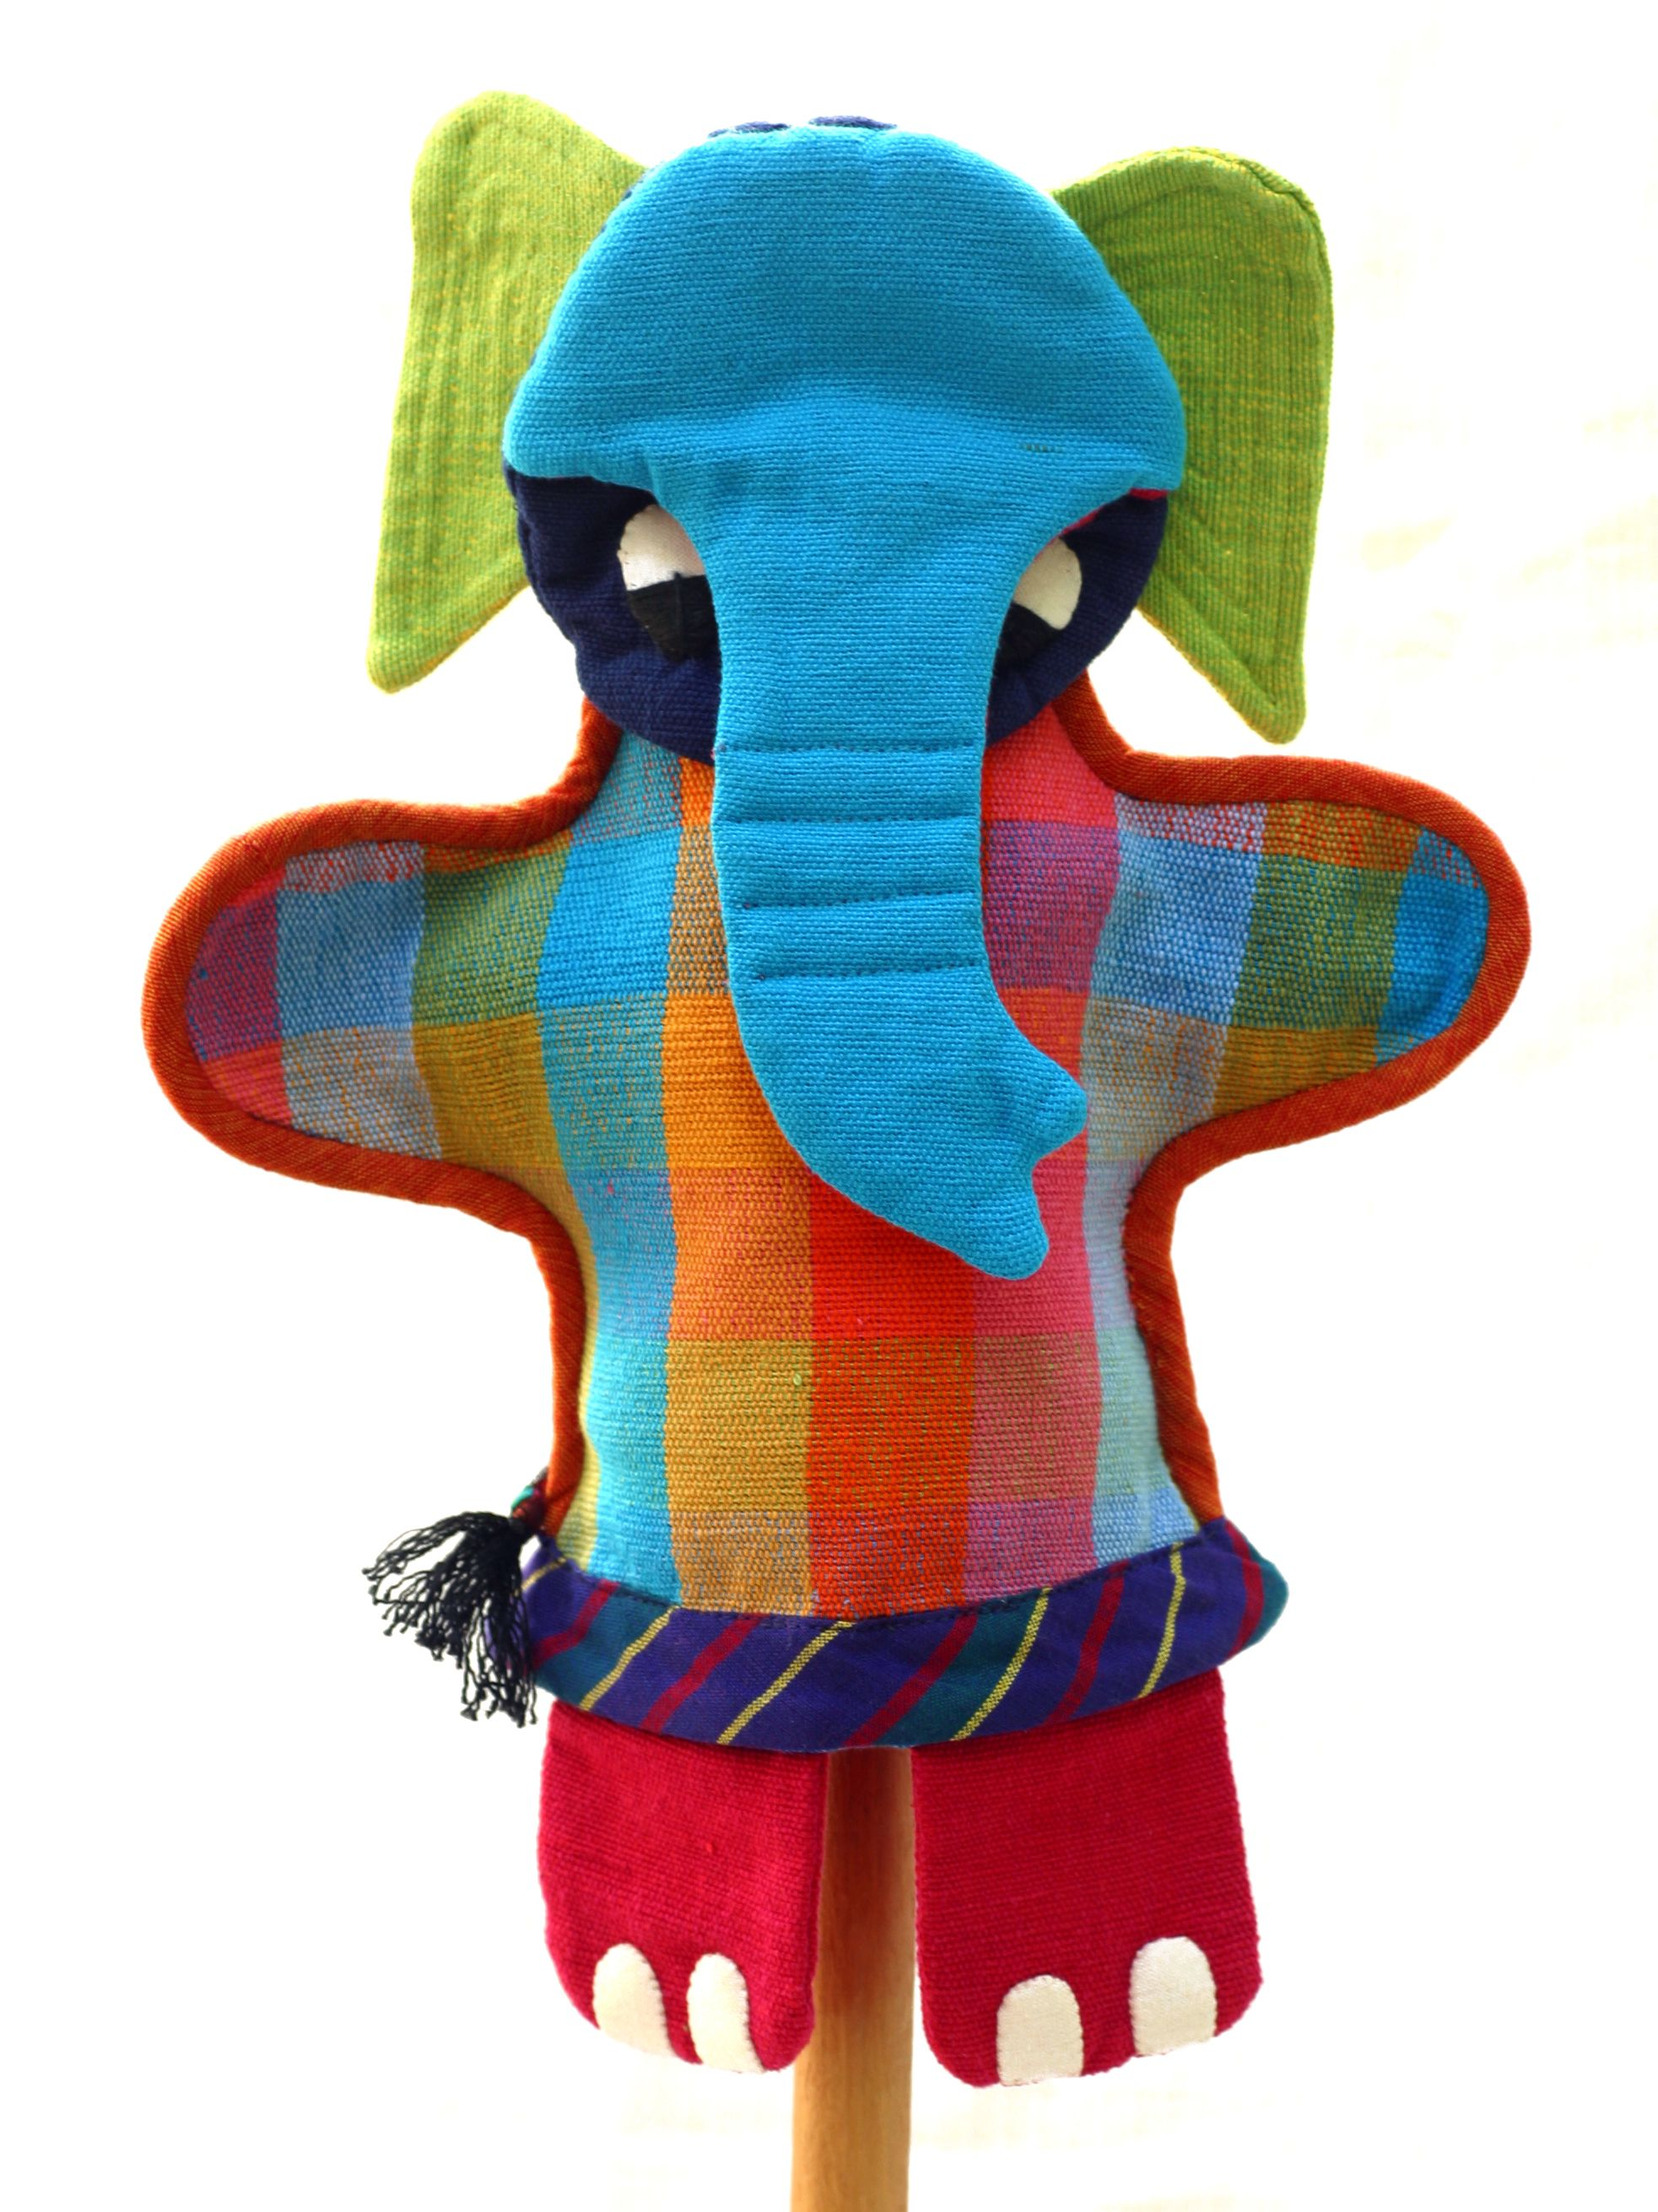 Elephant hand puppet by Barefoot